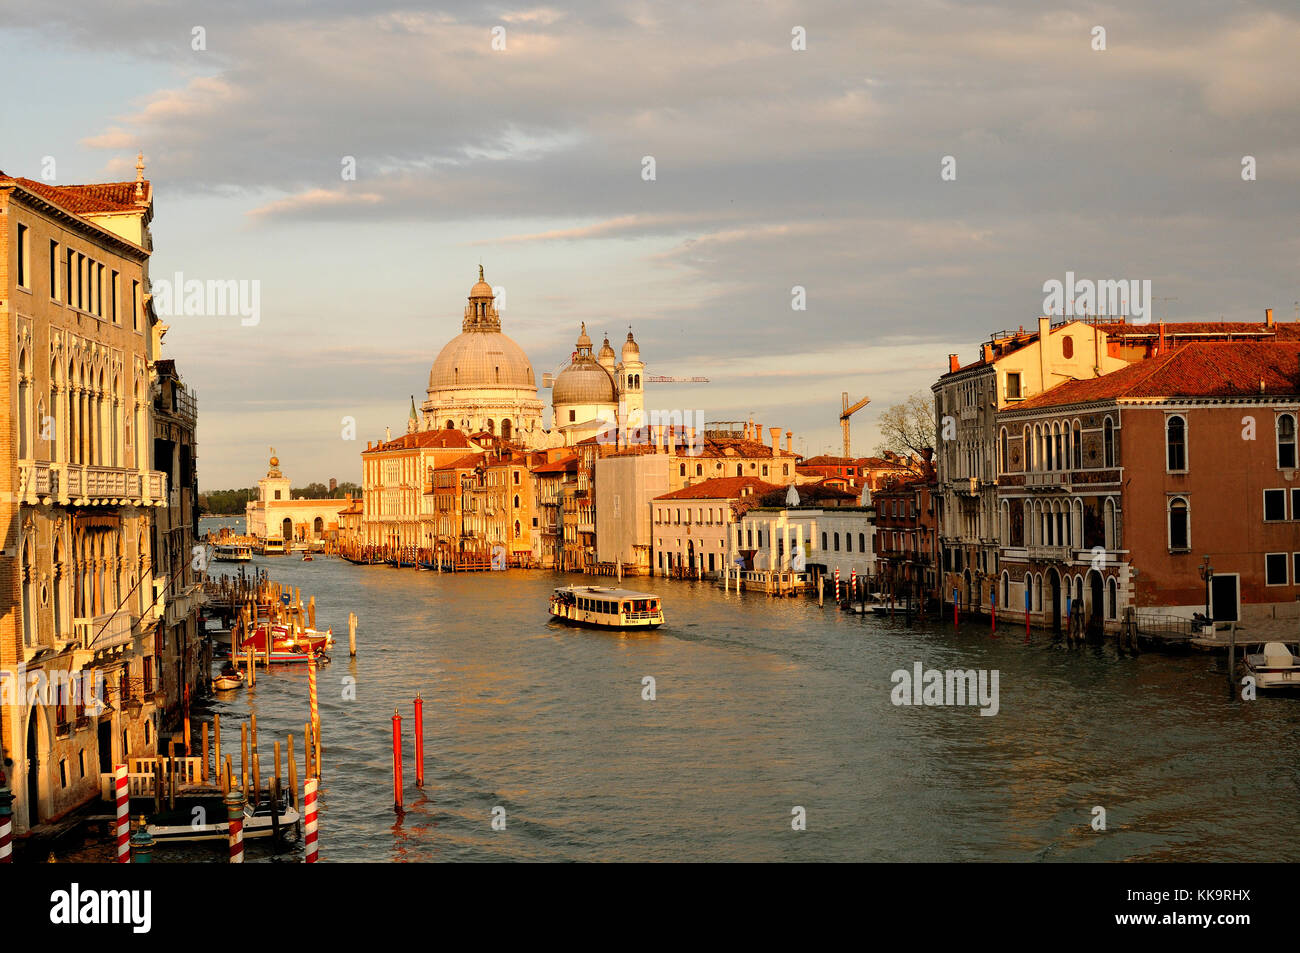 View of Grand Canal, Venice from Academia Bridge - Stock Image